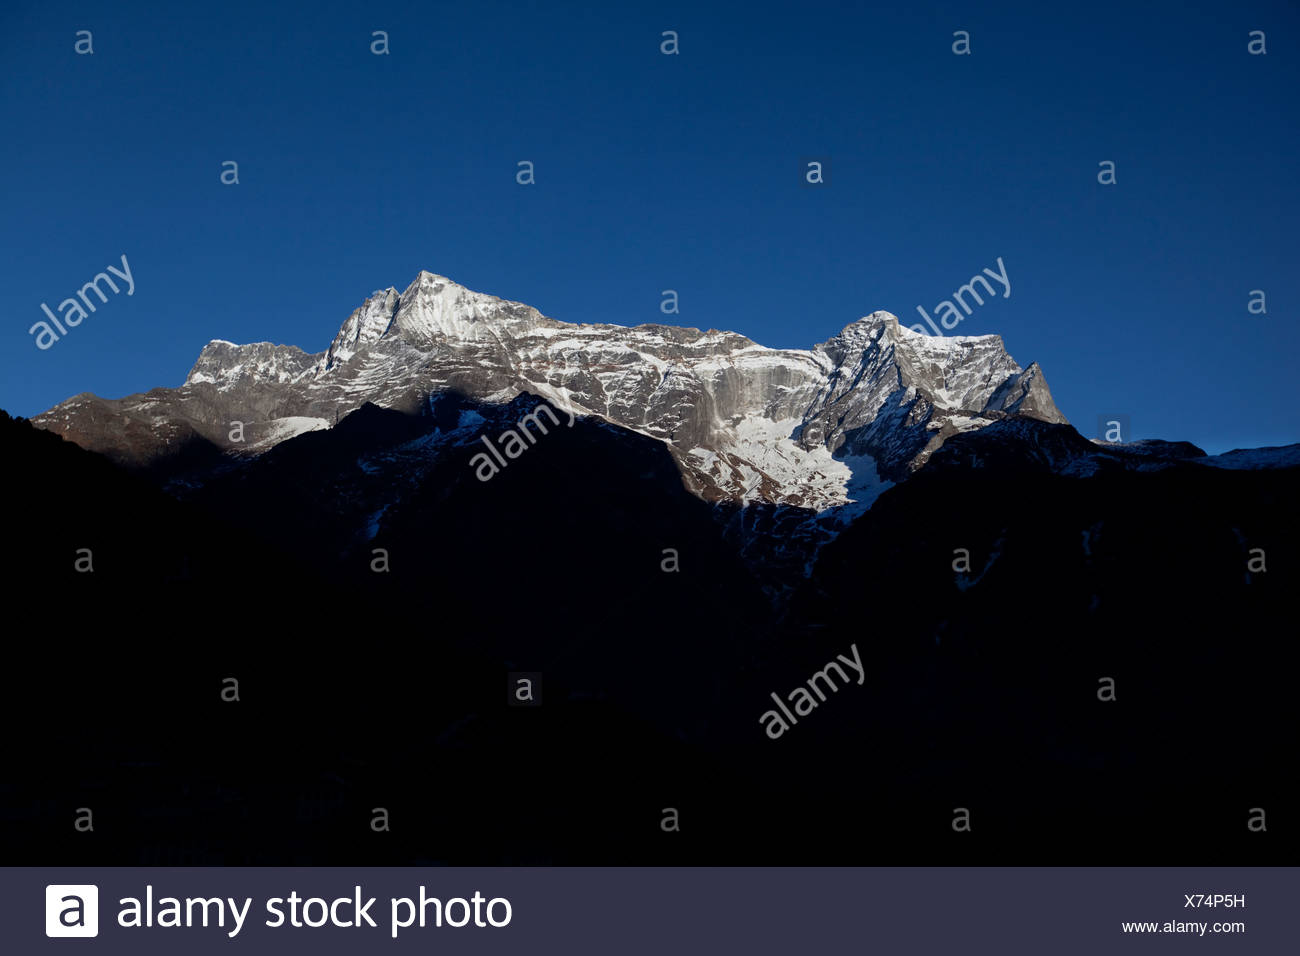 The landscape prone mountainside view from Namche Bazaar, Nepal. - Stock Image